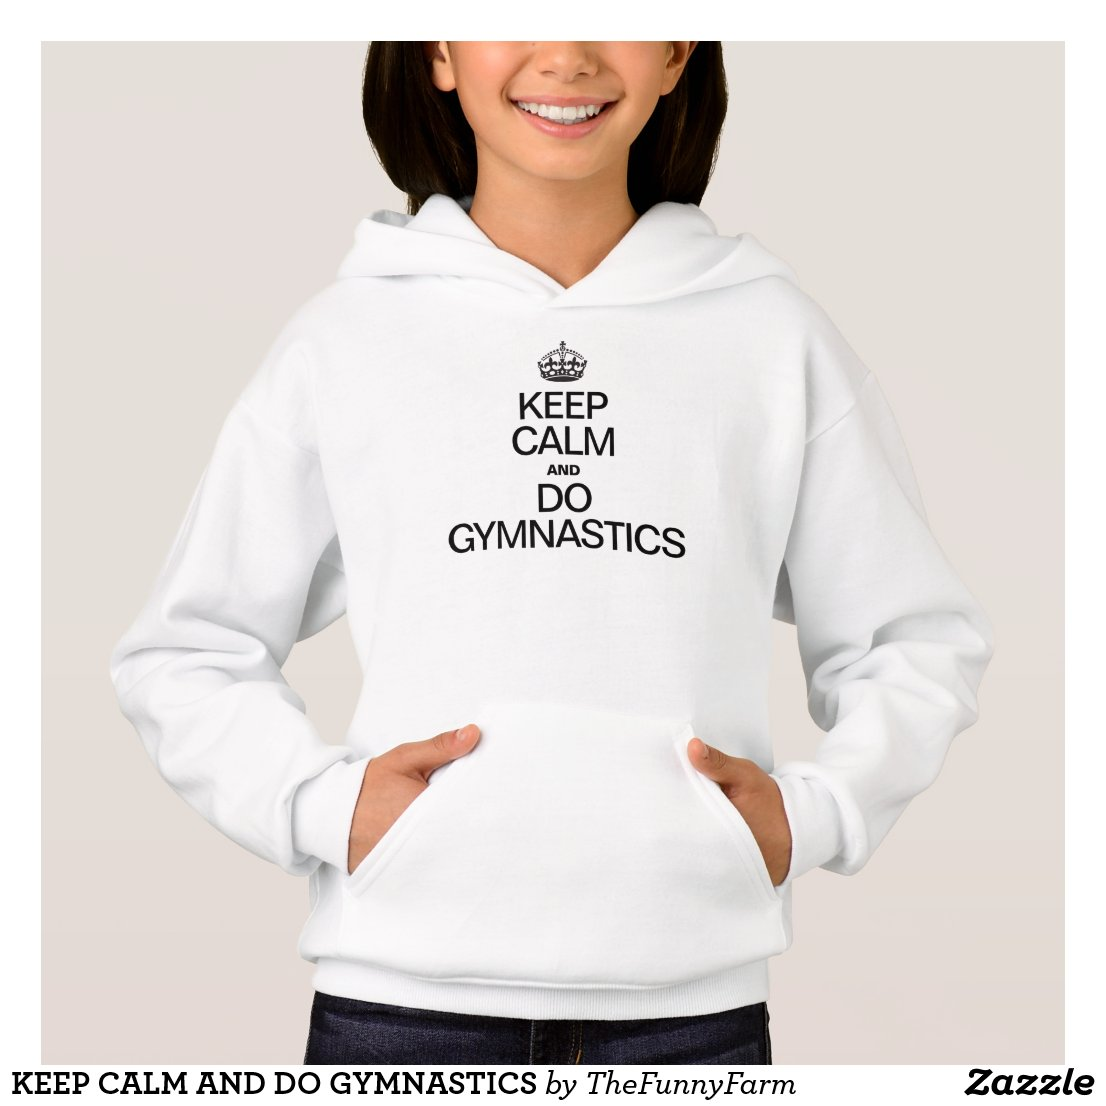 KEEP CALM AND DO GYMNASTICS HOODIE